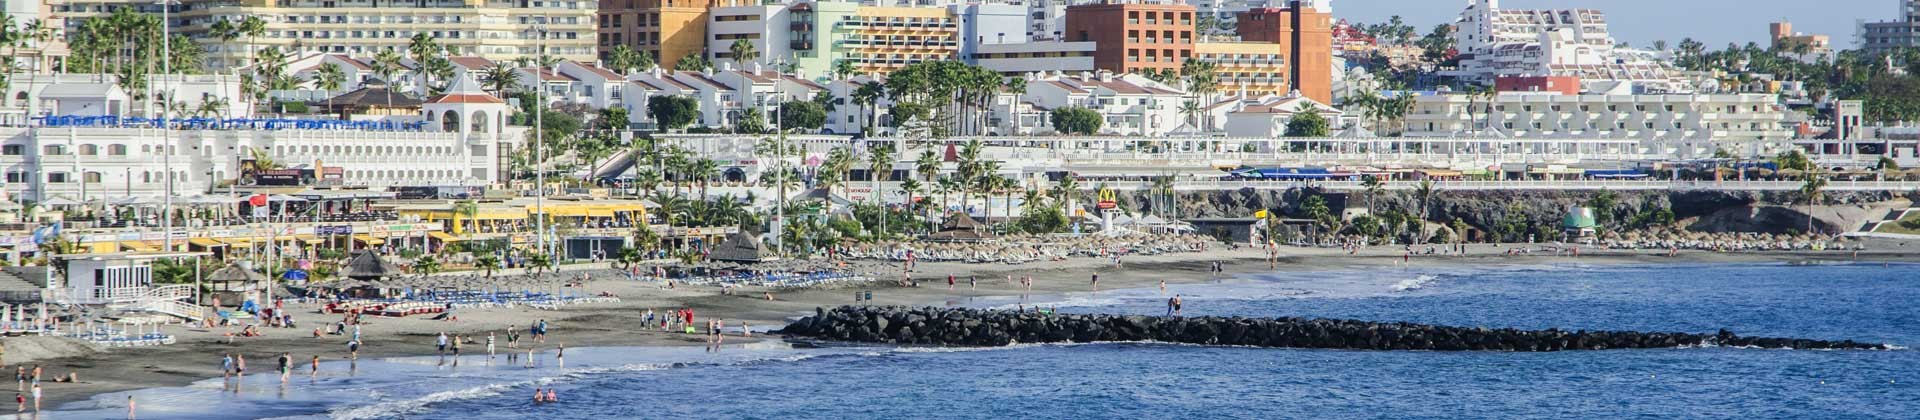 https://www.goodmorningtenerife.com/wp-content/uploads/2014/08/04_slide_landscape_GM_Tenerife-1920x420.jpg